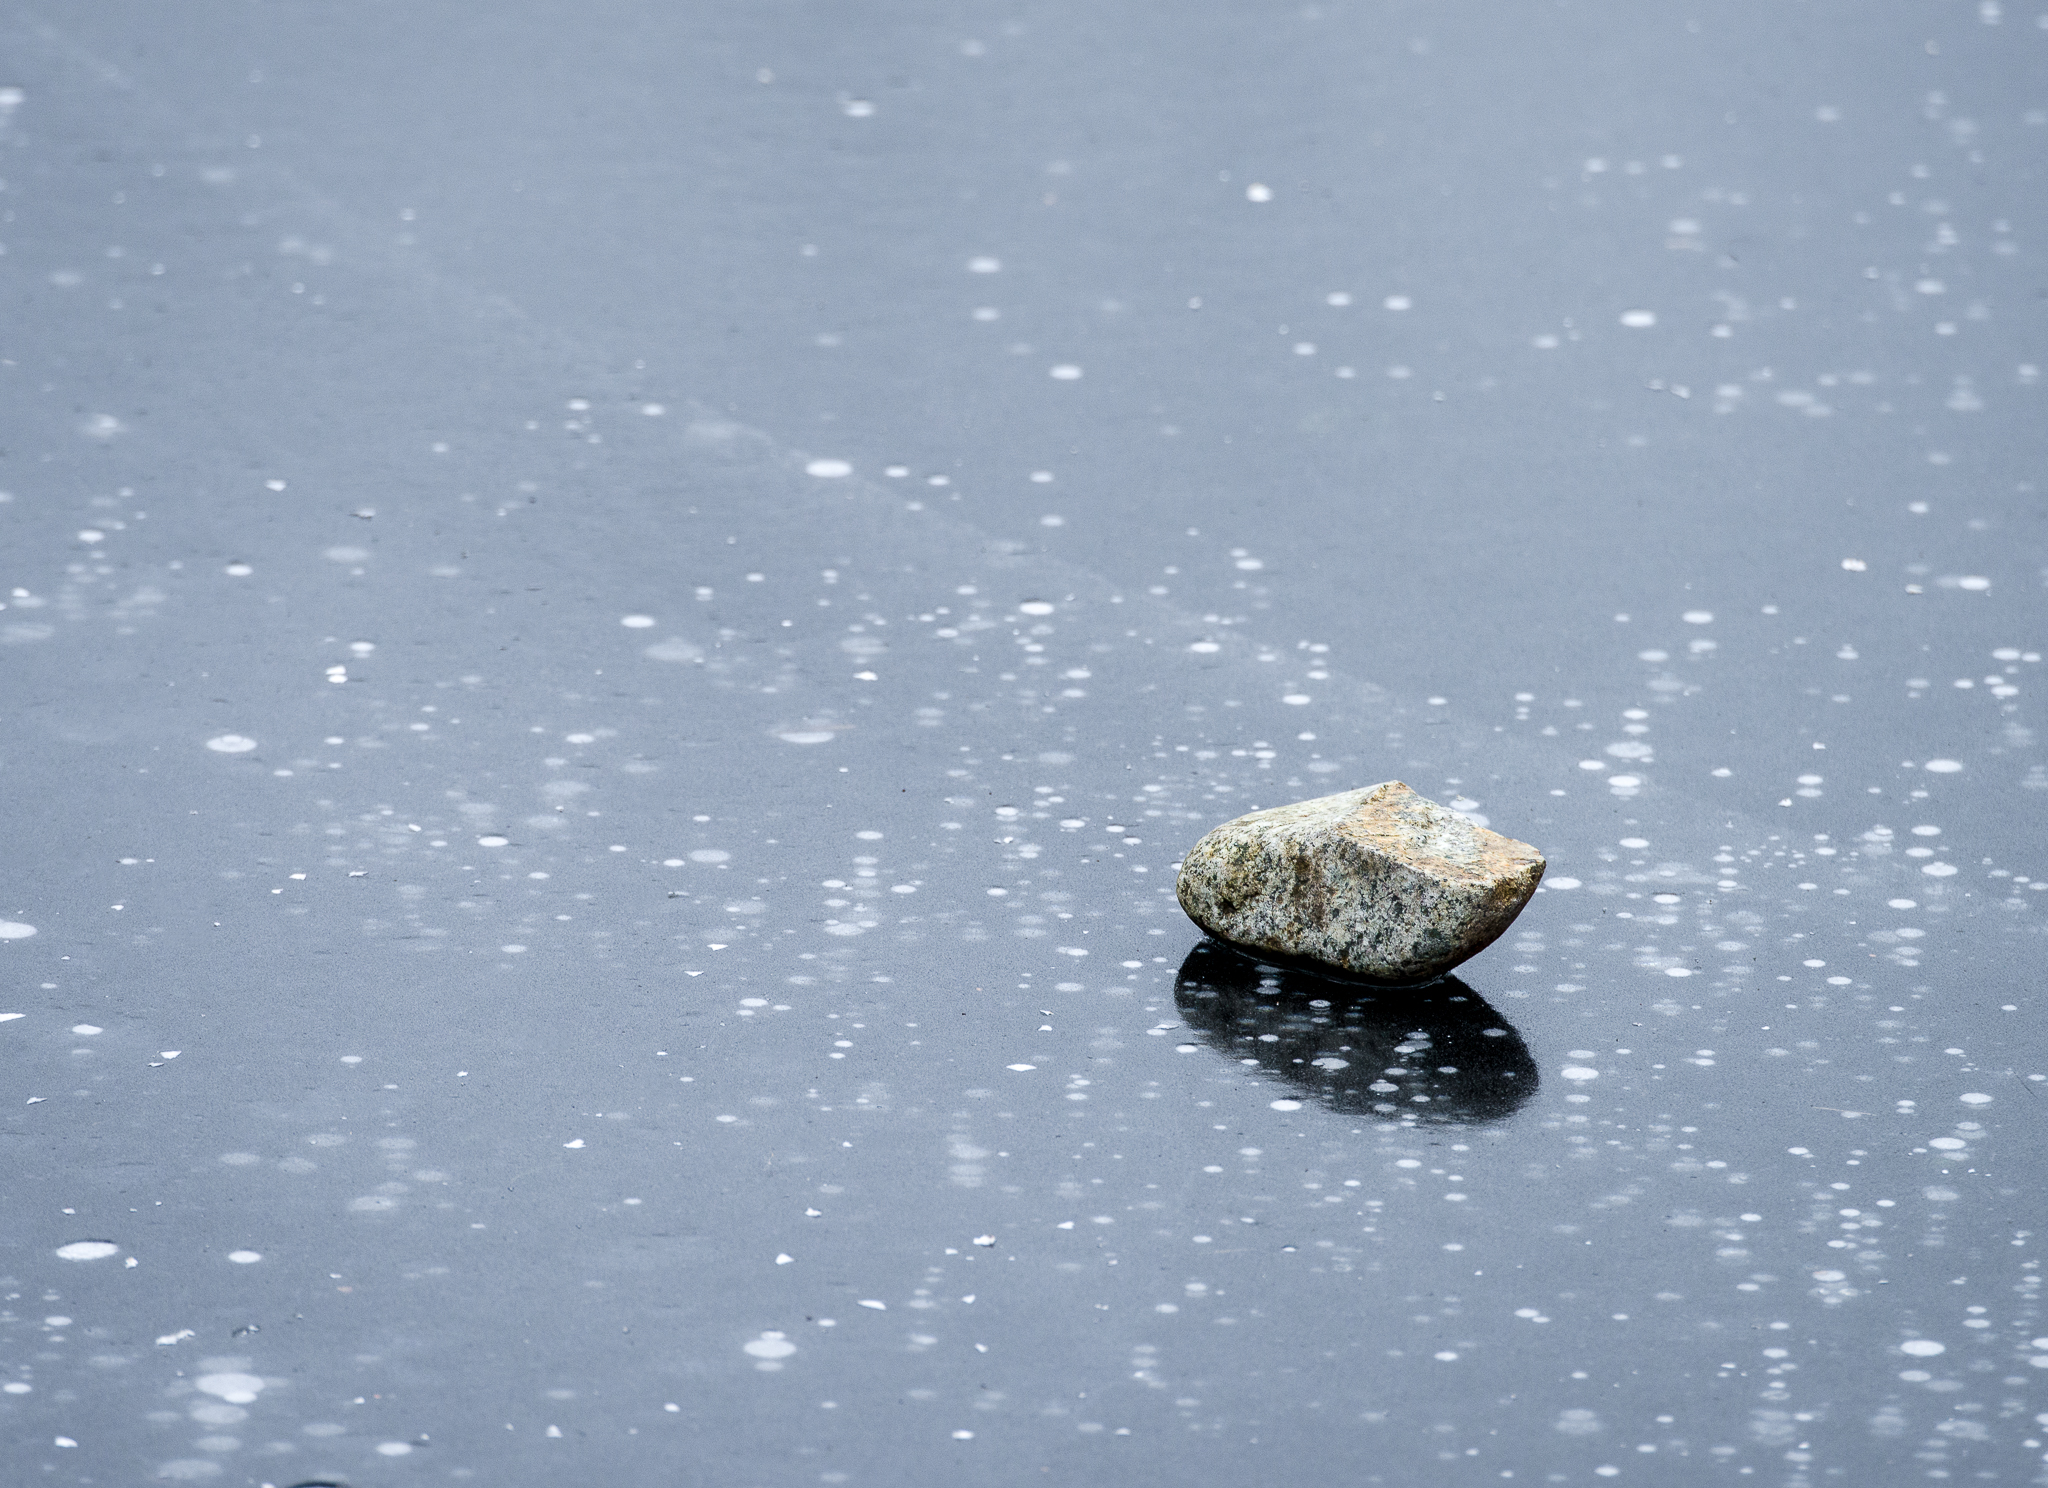 Frozen rock on the water (pretty stark, but I think it's a pleasant background image  )